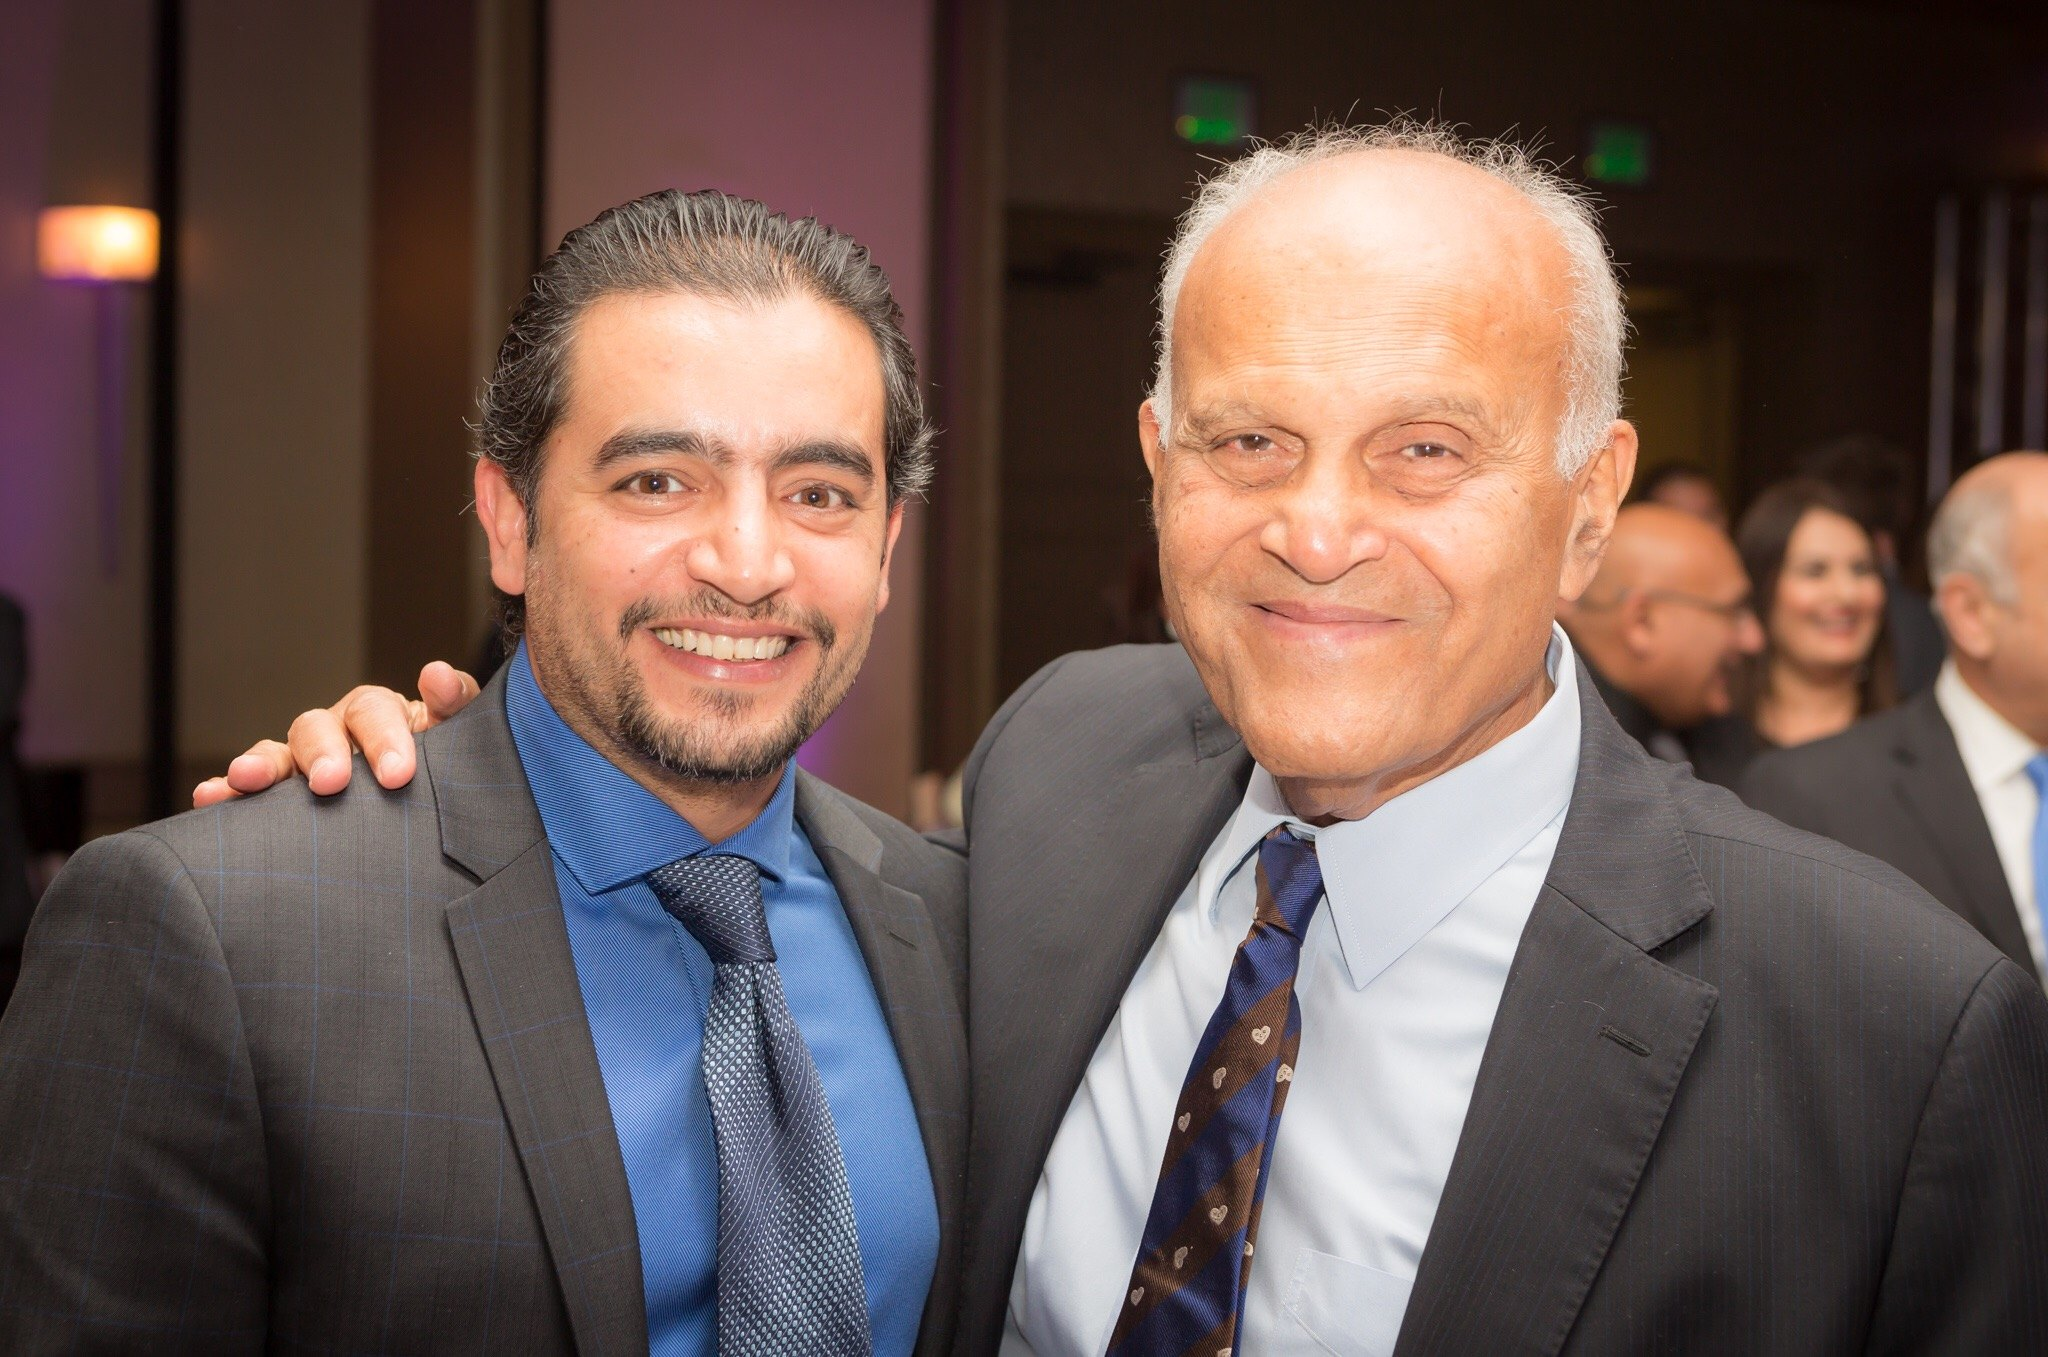 Celebrity guest Hany Salama, Egyptian movie star, attended the event to show his support for the Magdi Yacoub Heart Foundation.